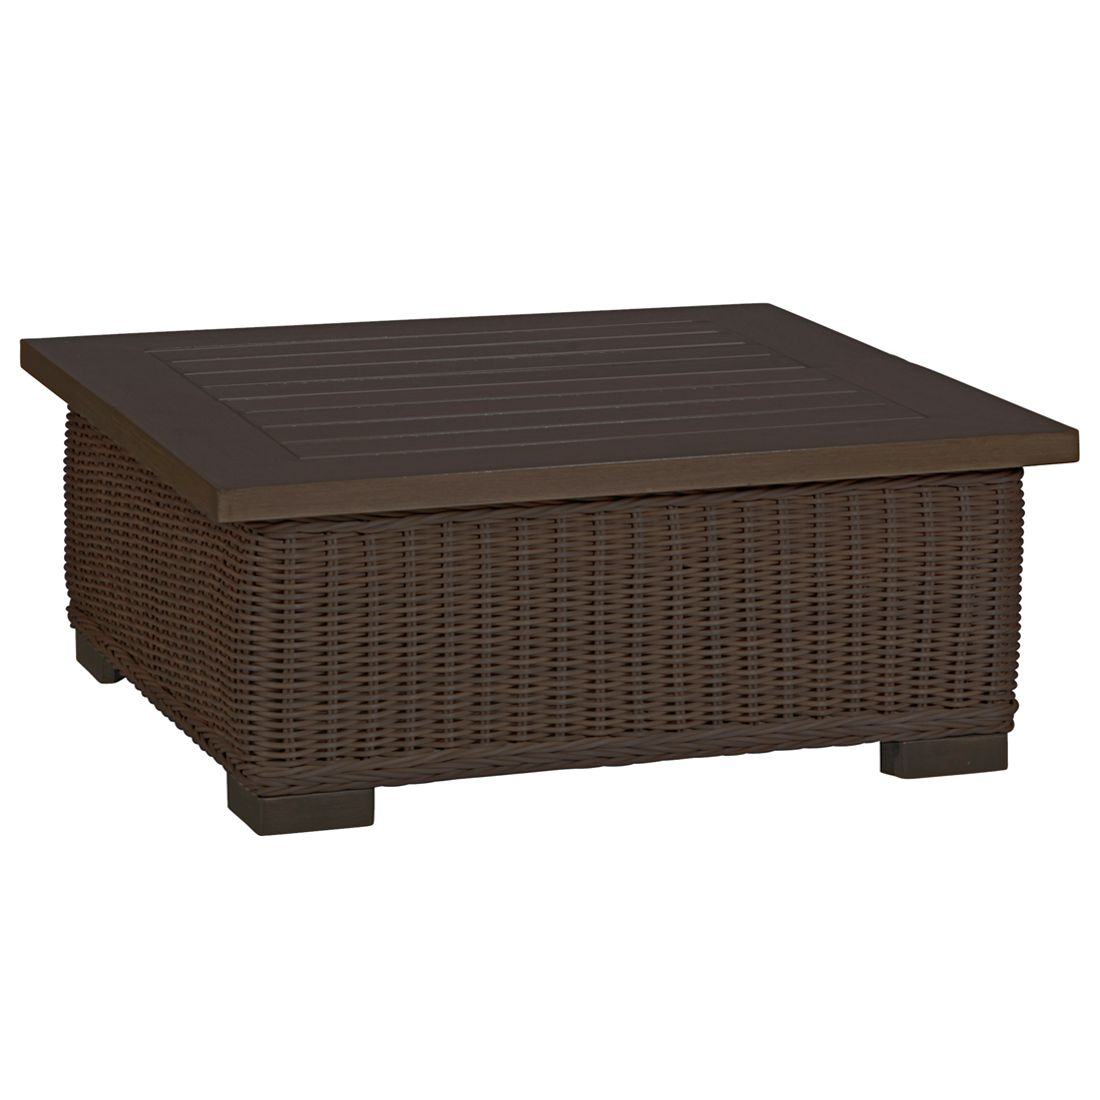 Rustic wicker outdoor coffee tables for Rustic outdoor coffee table